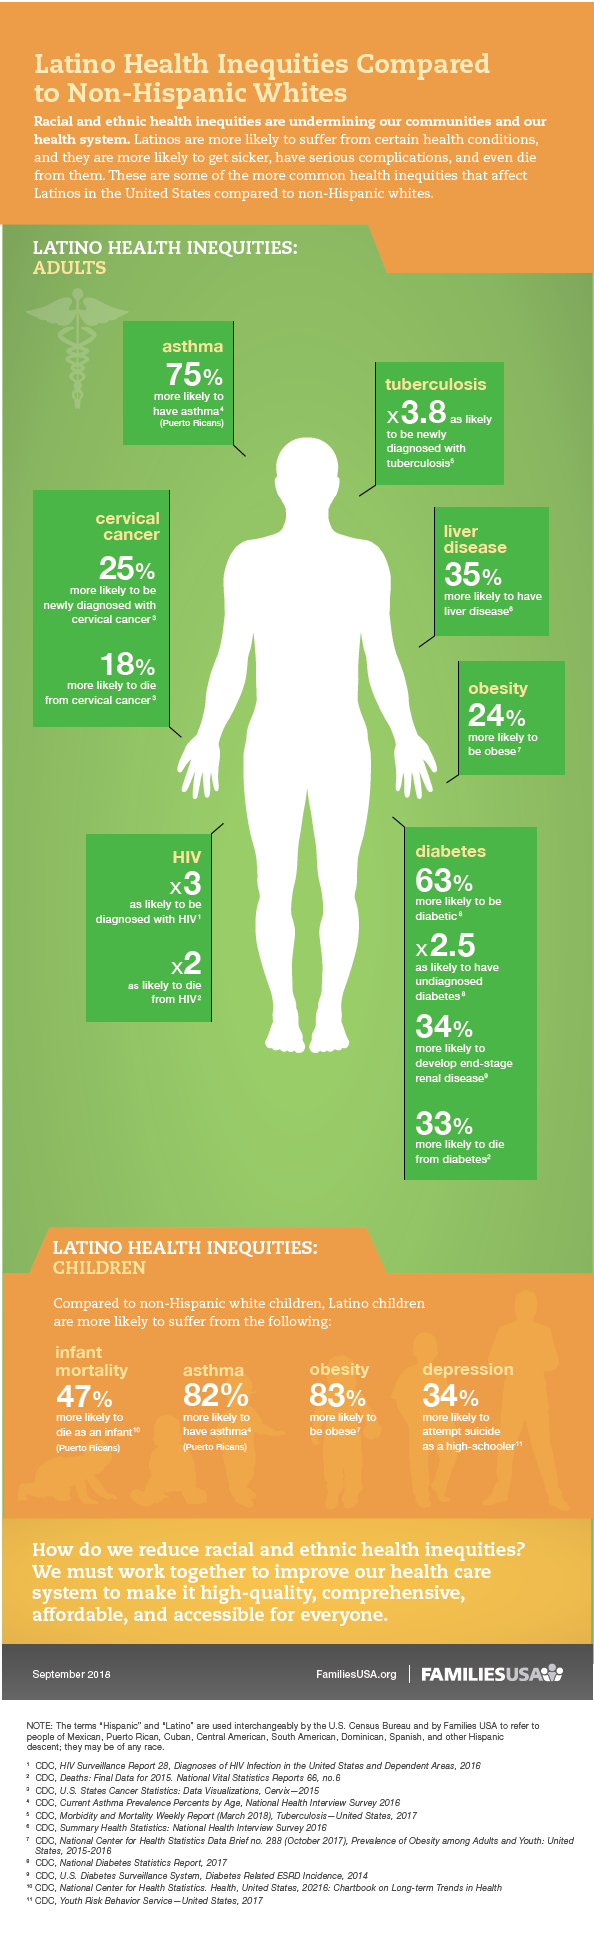 https://familiesusa.org/wp-content/uploads/2019/09/HSI-Health-inequities_latinos-infographic_final_092518-01.png